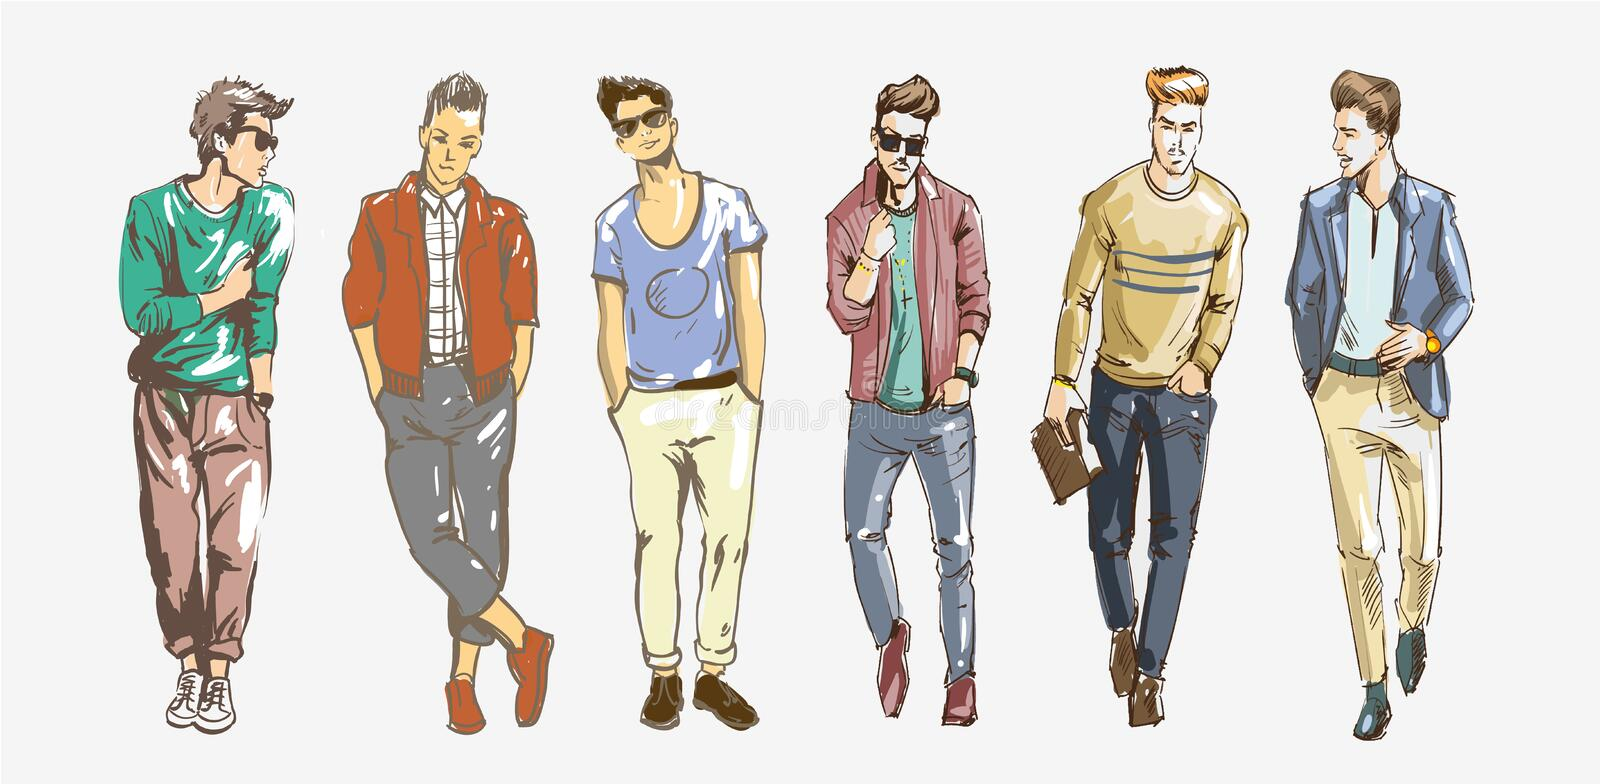 Fashion man. Collection of fashionable men s sketches on a white background. Men casual fashion illustration vector illustration